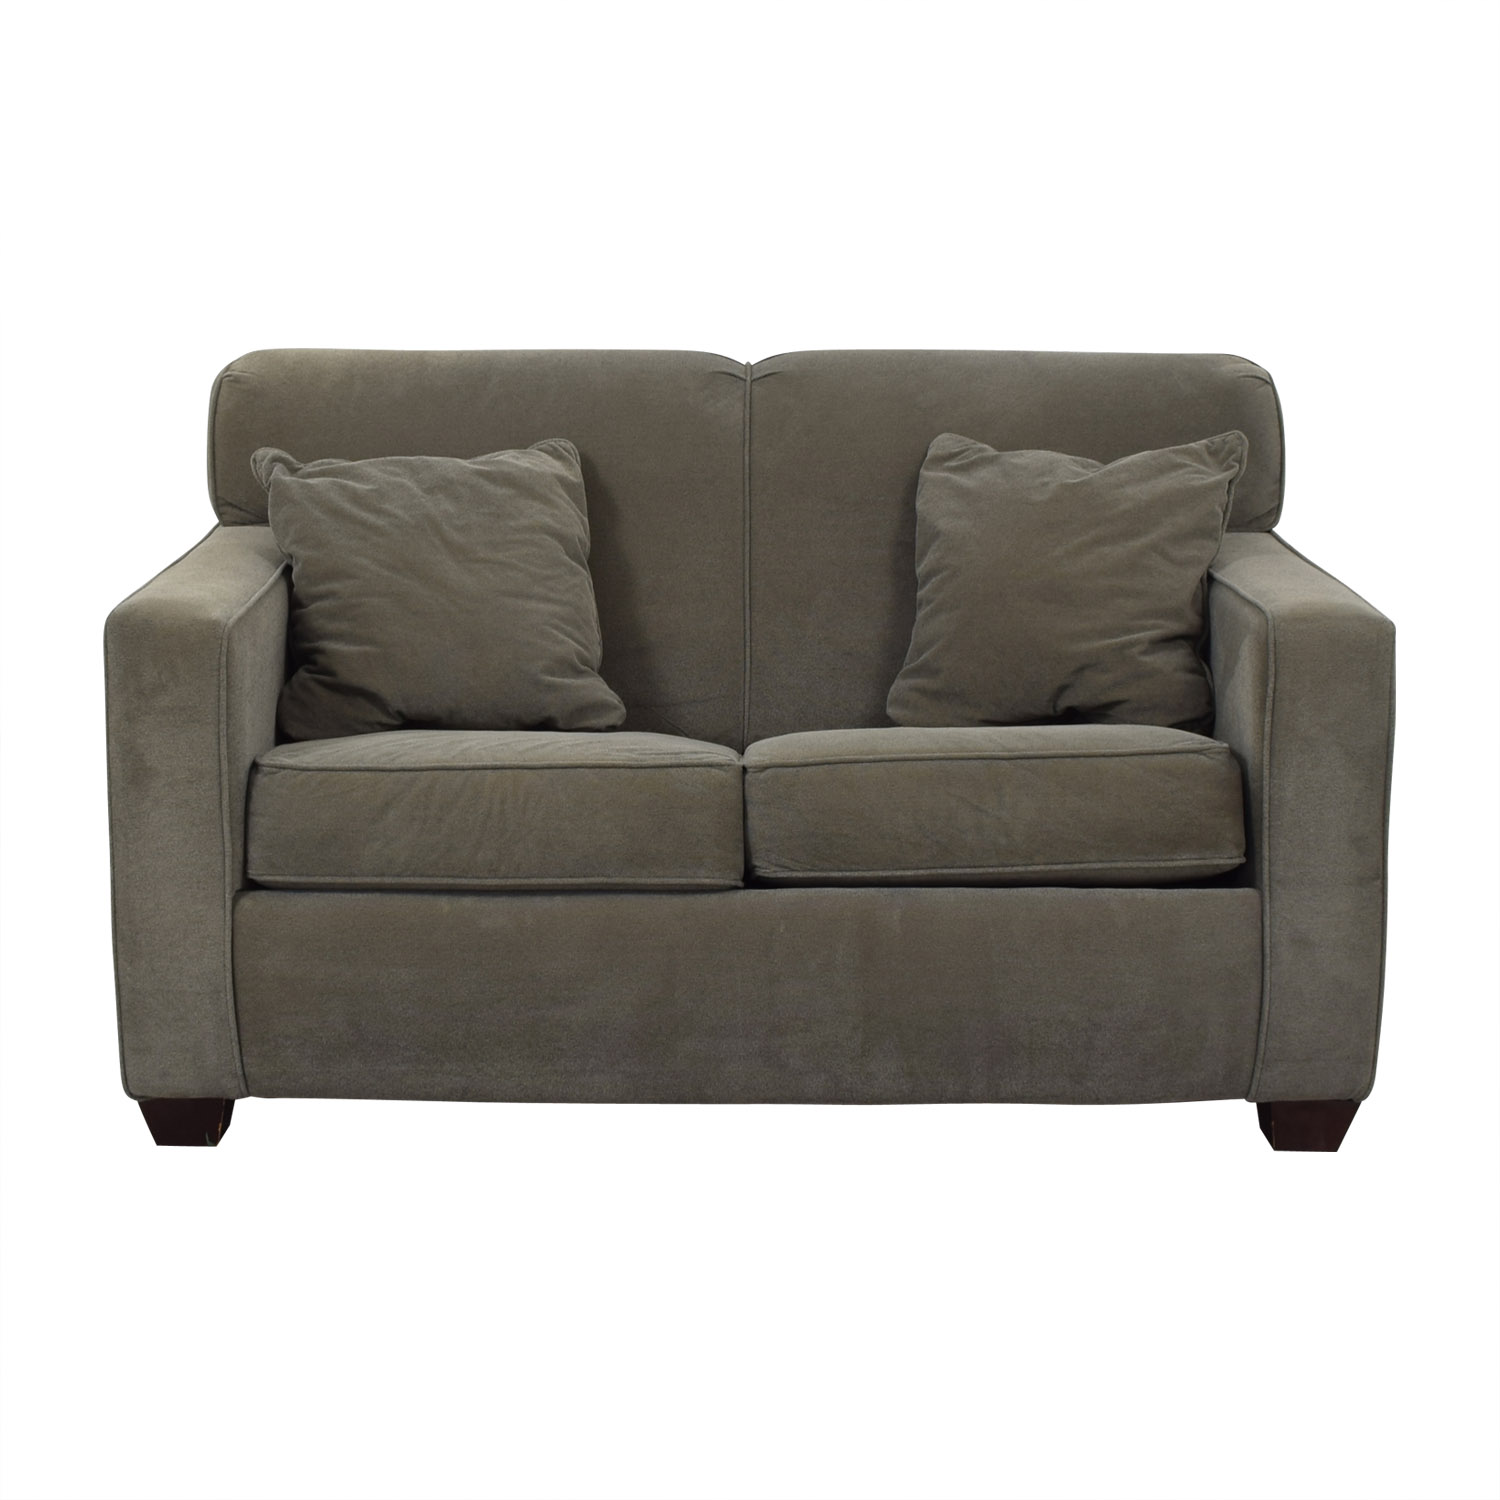 Jennifer Furniture Jennifer Furniture Carl Twin Sleeper Loveseat second hand